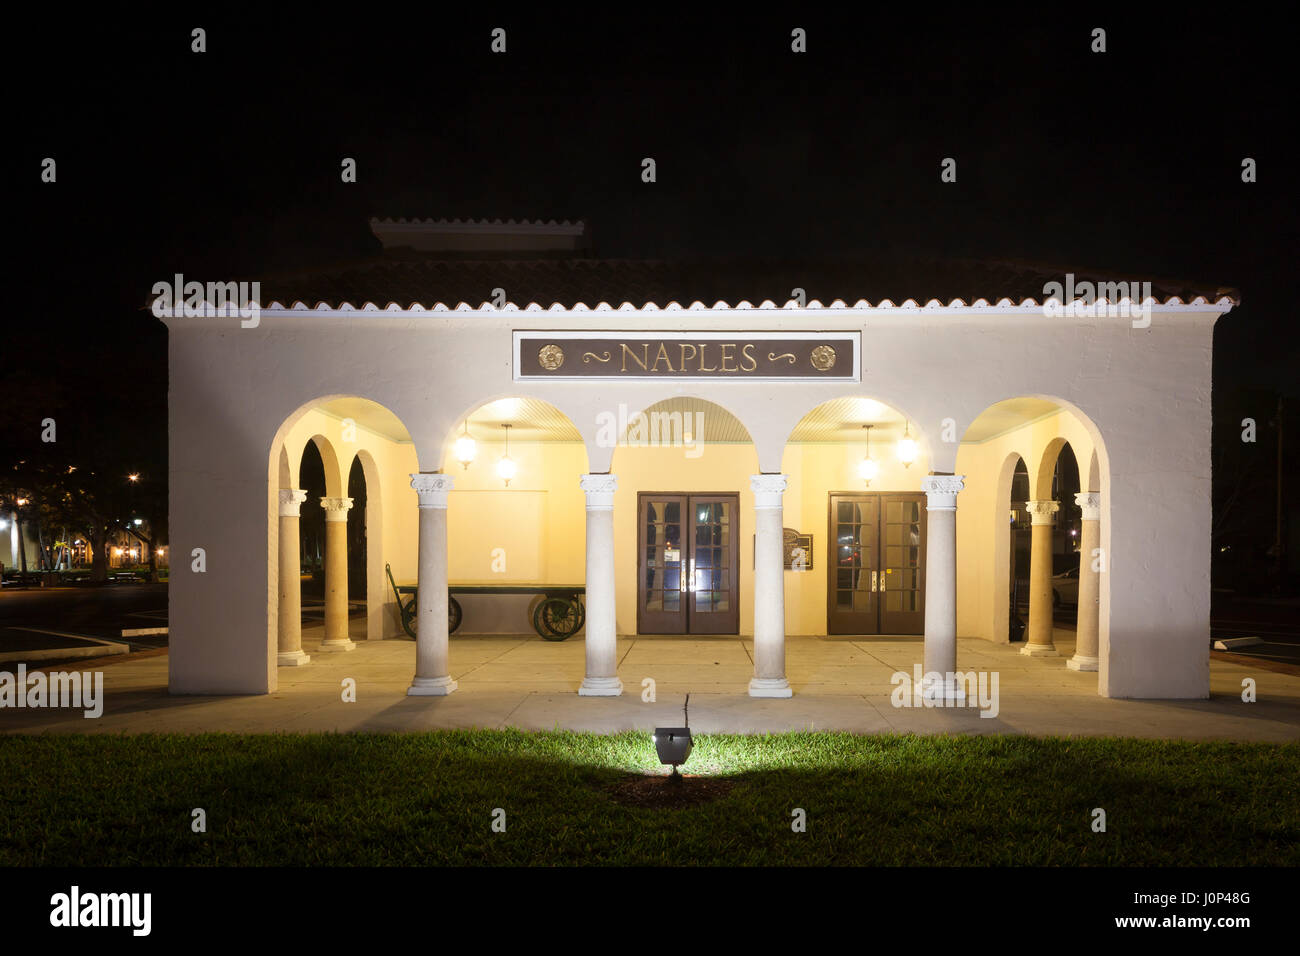 Naples, Fl, USA - March 21, 2017: The Naples depot and train museum illuminated at night. Florida, United States - Stock Image